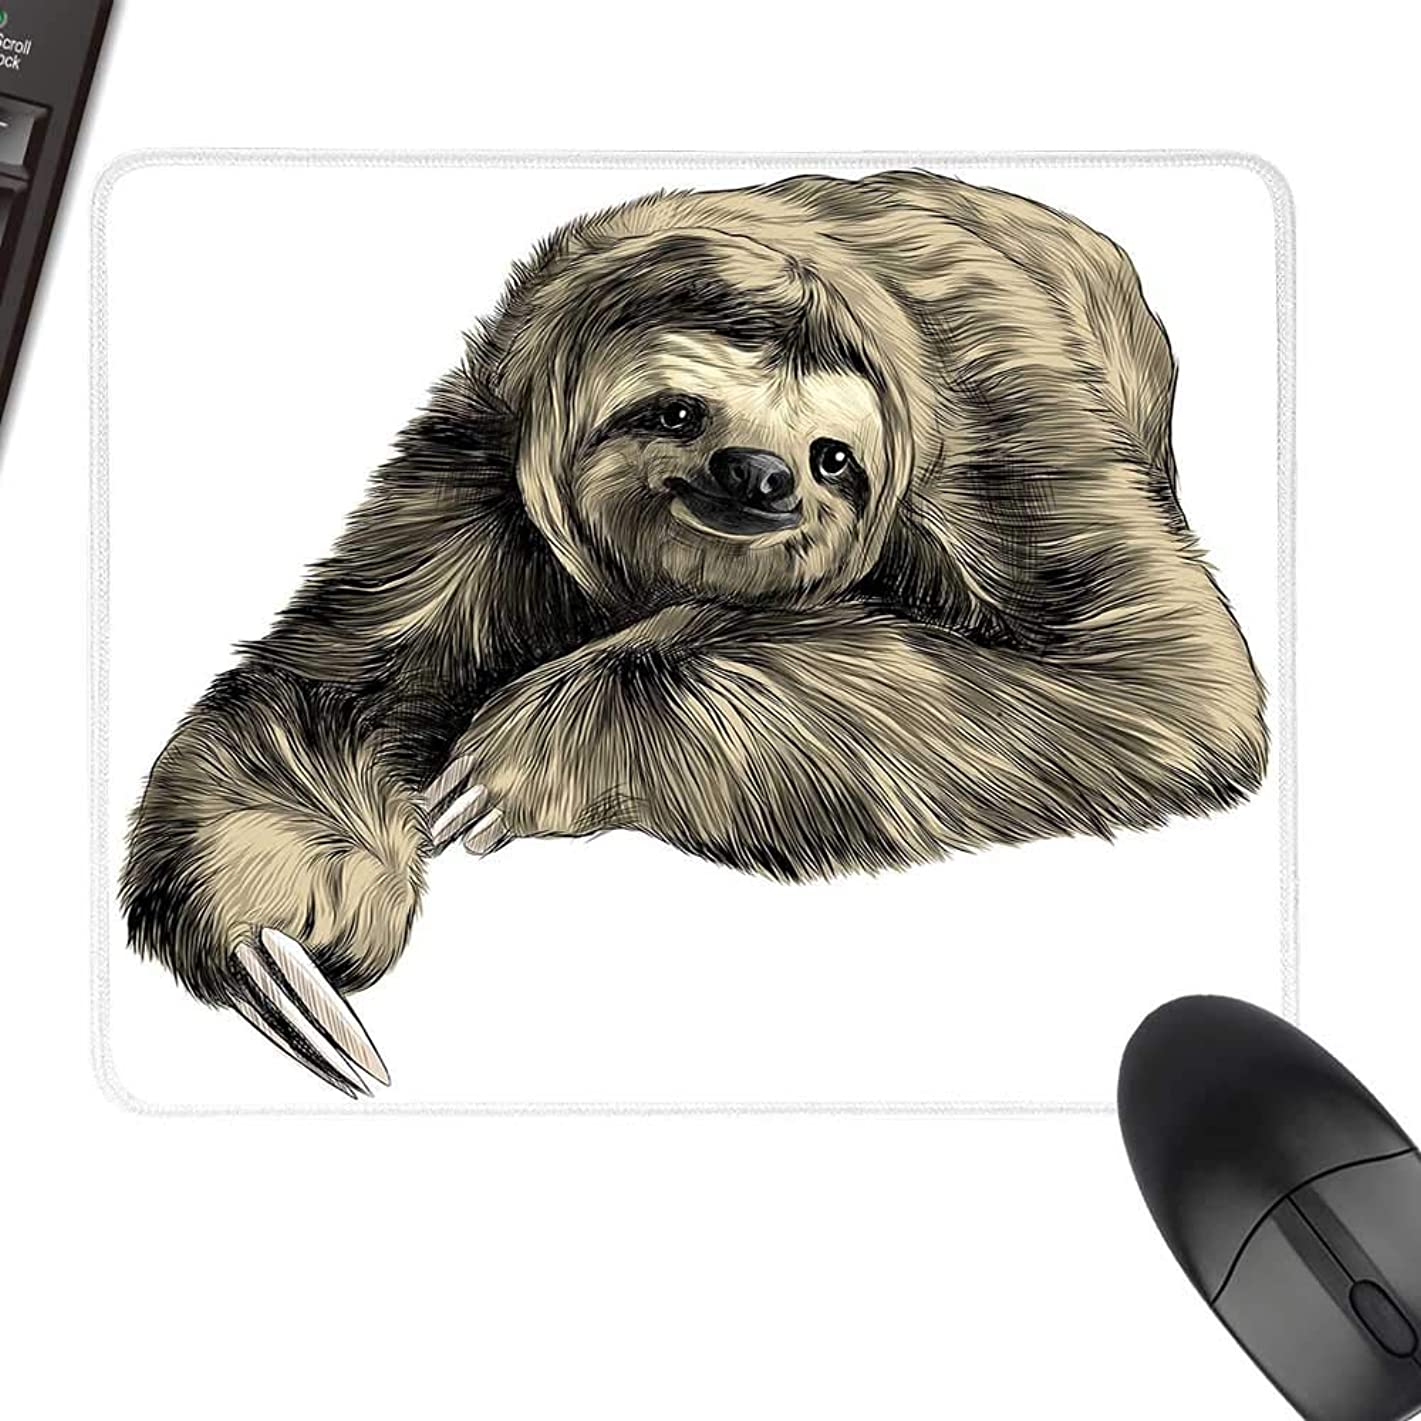 Sloth Wrist Comfort Mouse Pad Sweetly Smiling Jungle Animals Lying Down with Crossed Legs Tropic Fauna Sketch Natural Rubber Gaming Mouse Mat 35.4